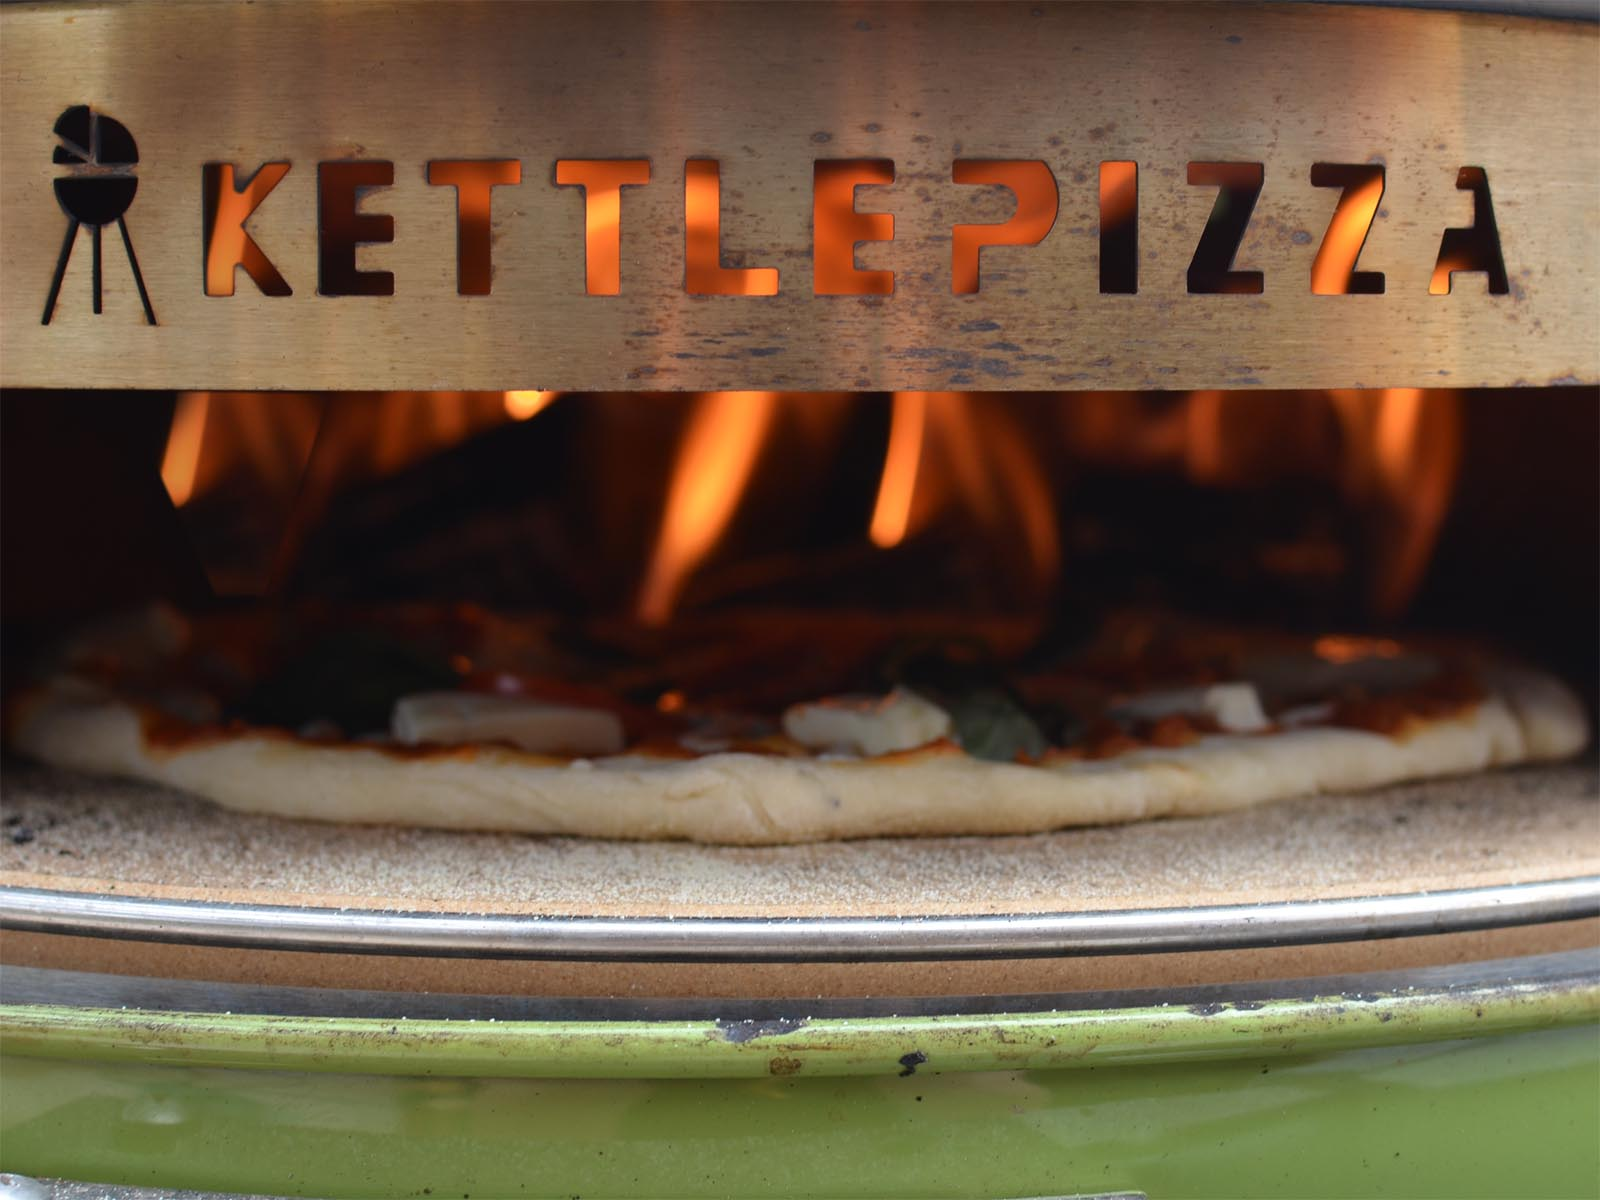 Kettle Pizza Review Weber Grill Pizza Oven Weber Kettle Club